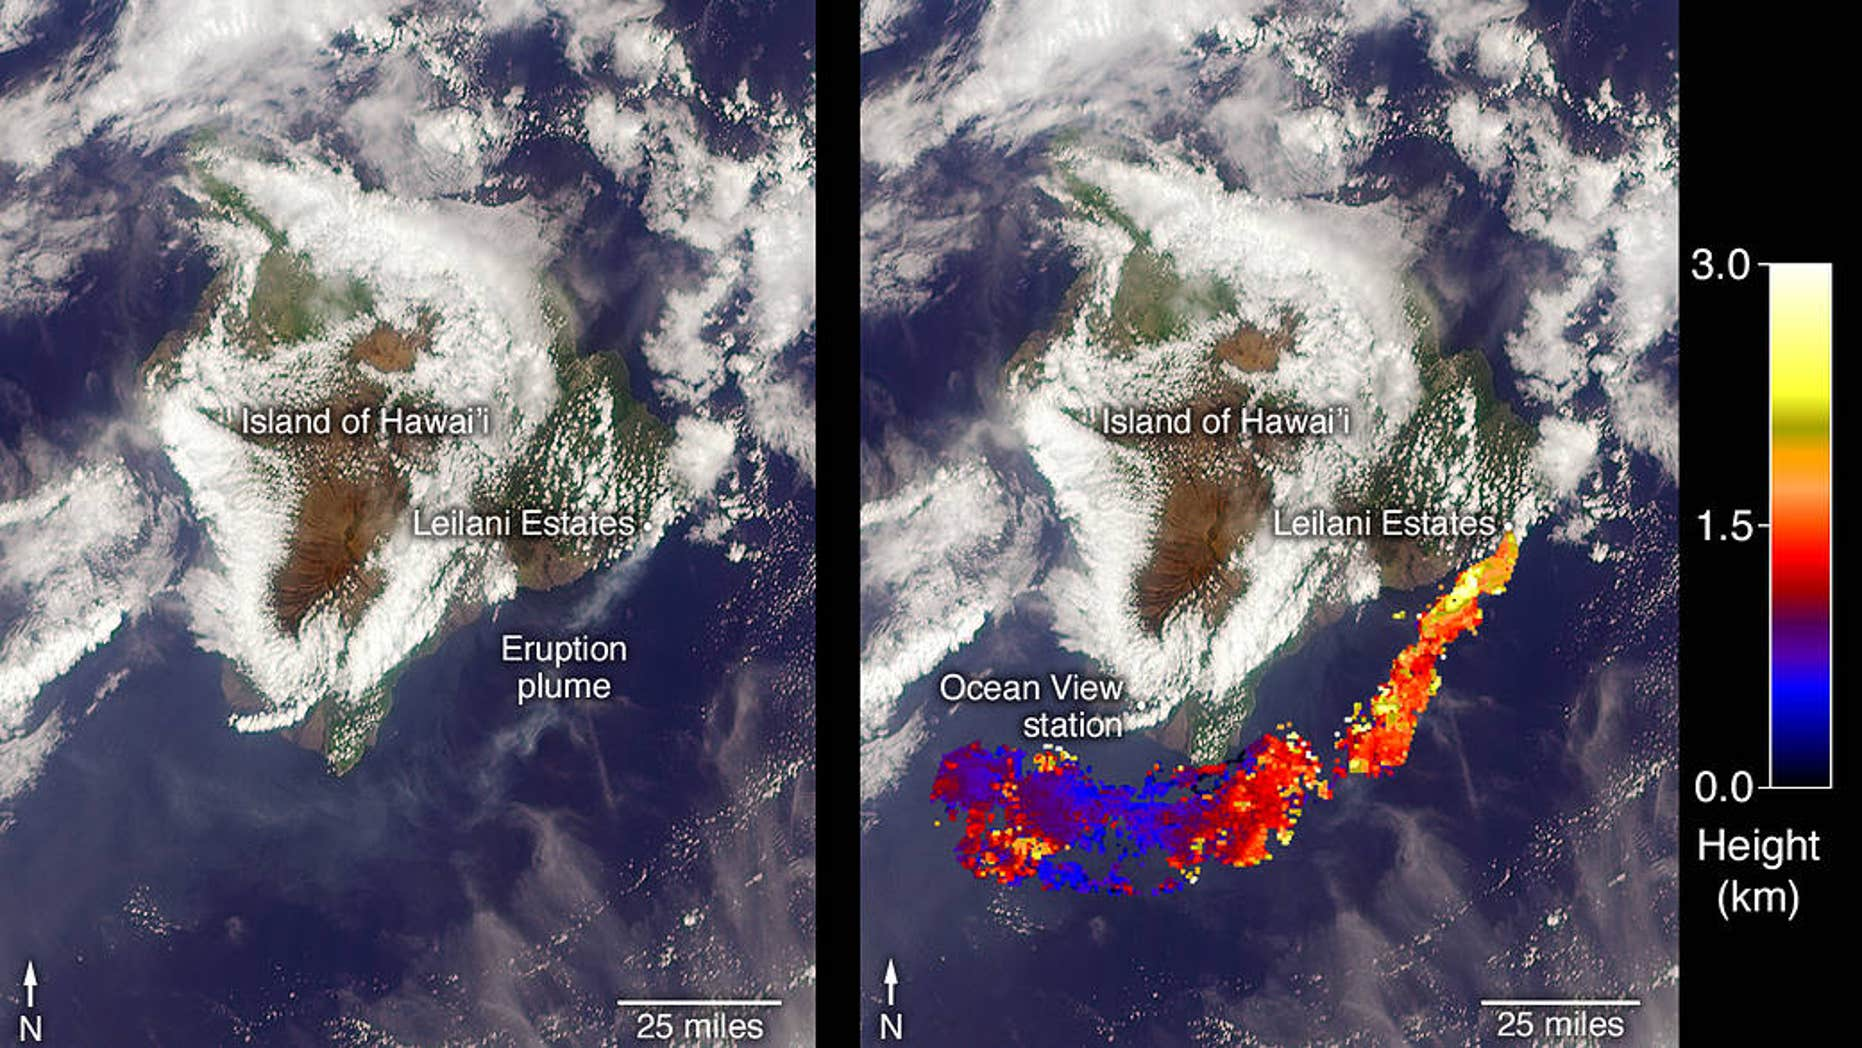 NASA's Terra satellite captured this view of the ash plume wafting from Hawaii's Kilauea volcano on May 6, 2018, using its Multi-angle Imaging SpectroRadiometer instrument. The right-hand frame shows the height of the plume.